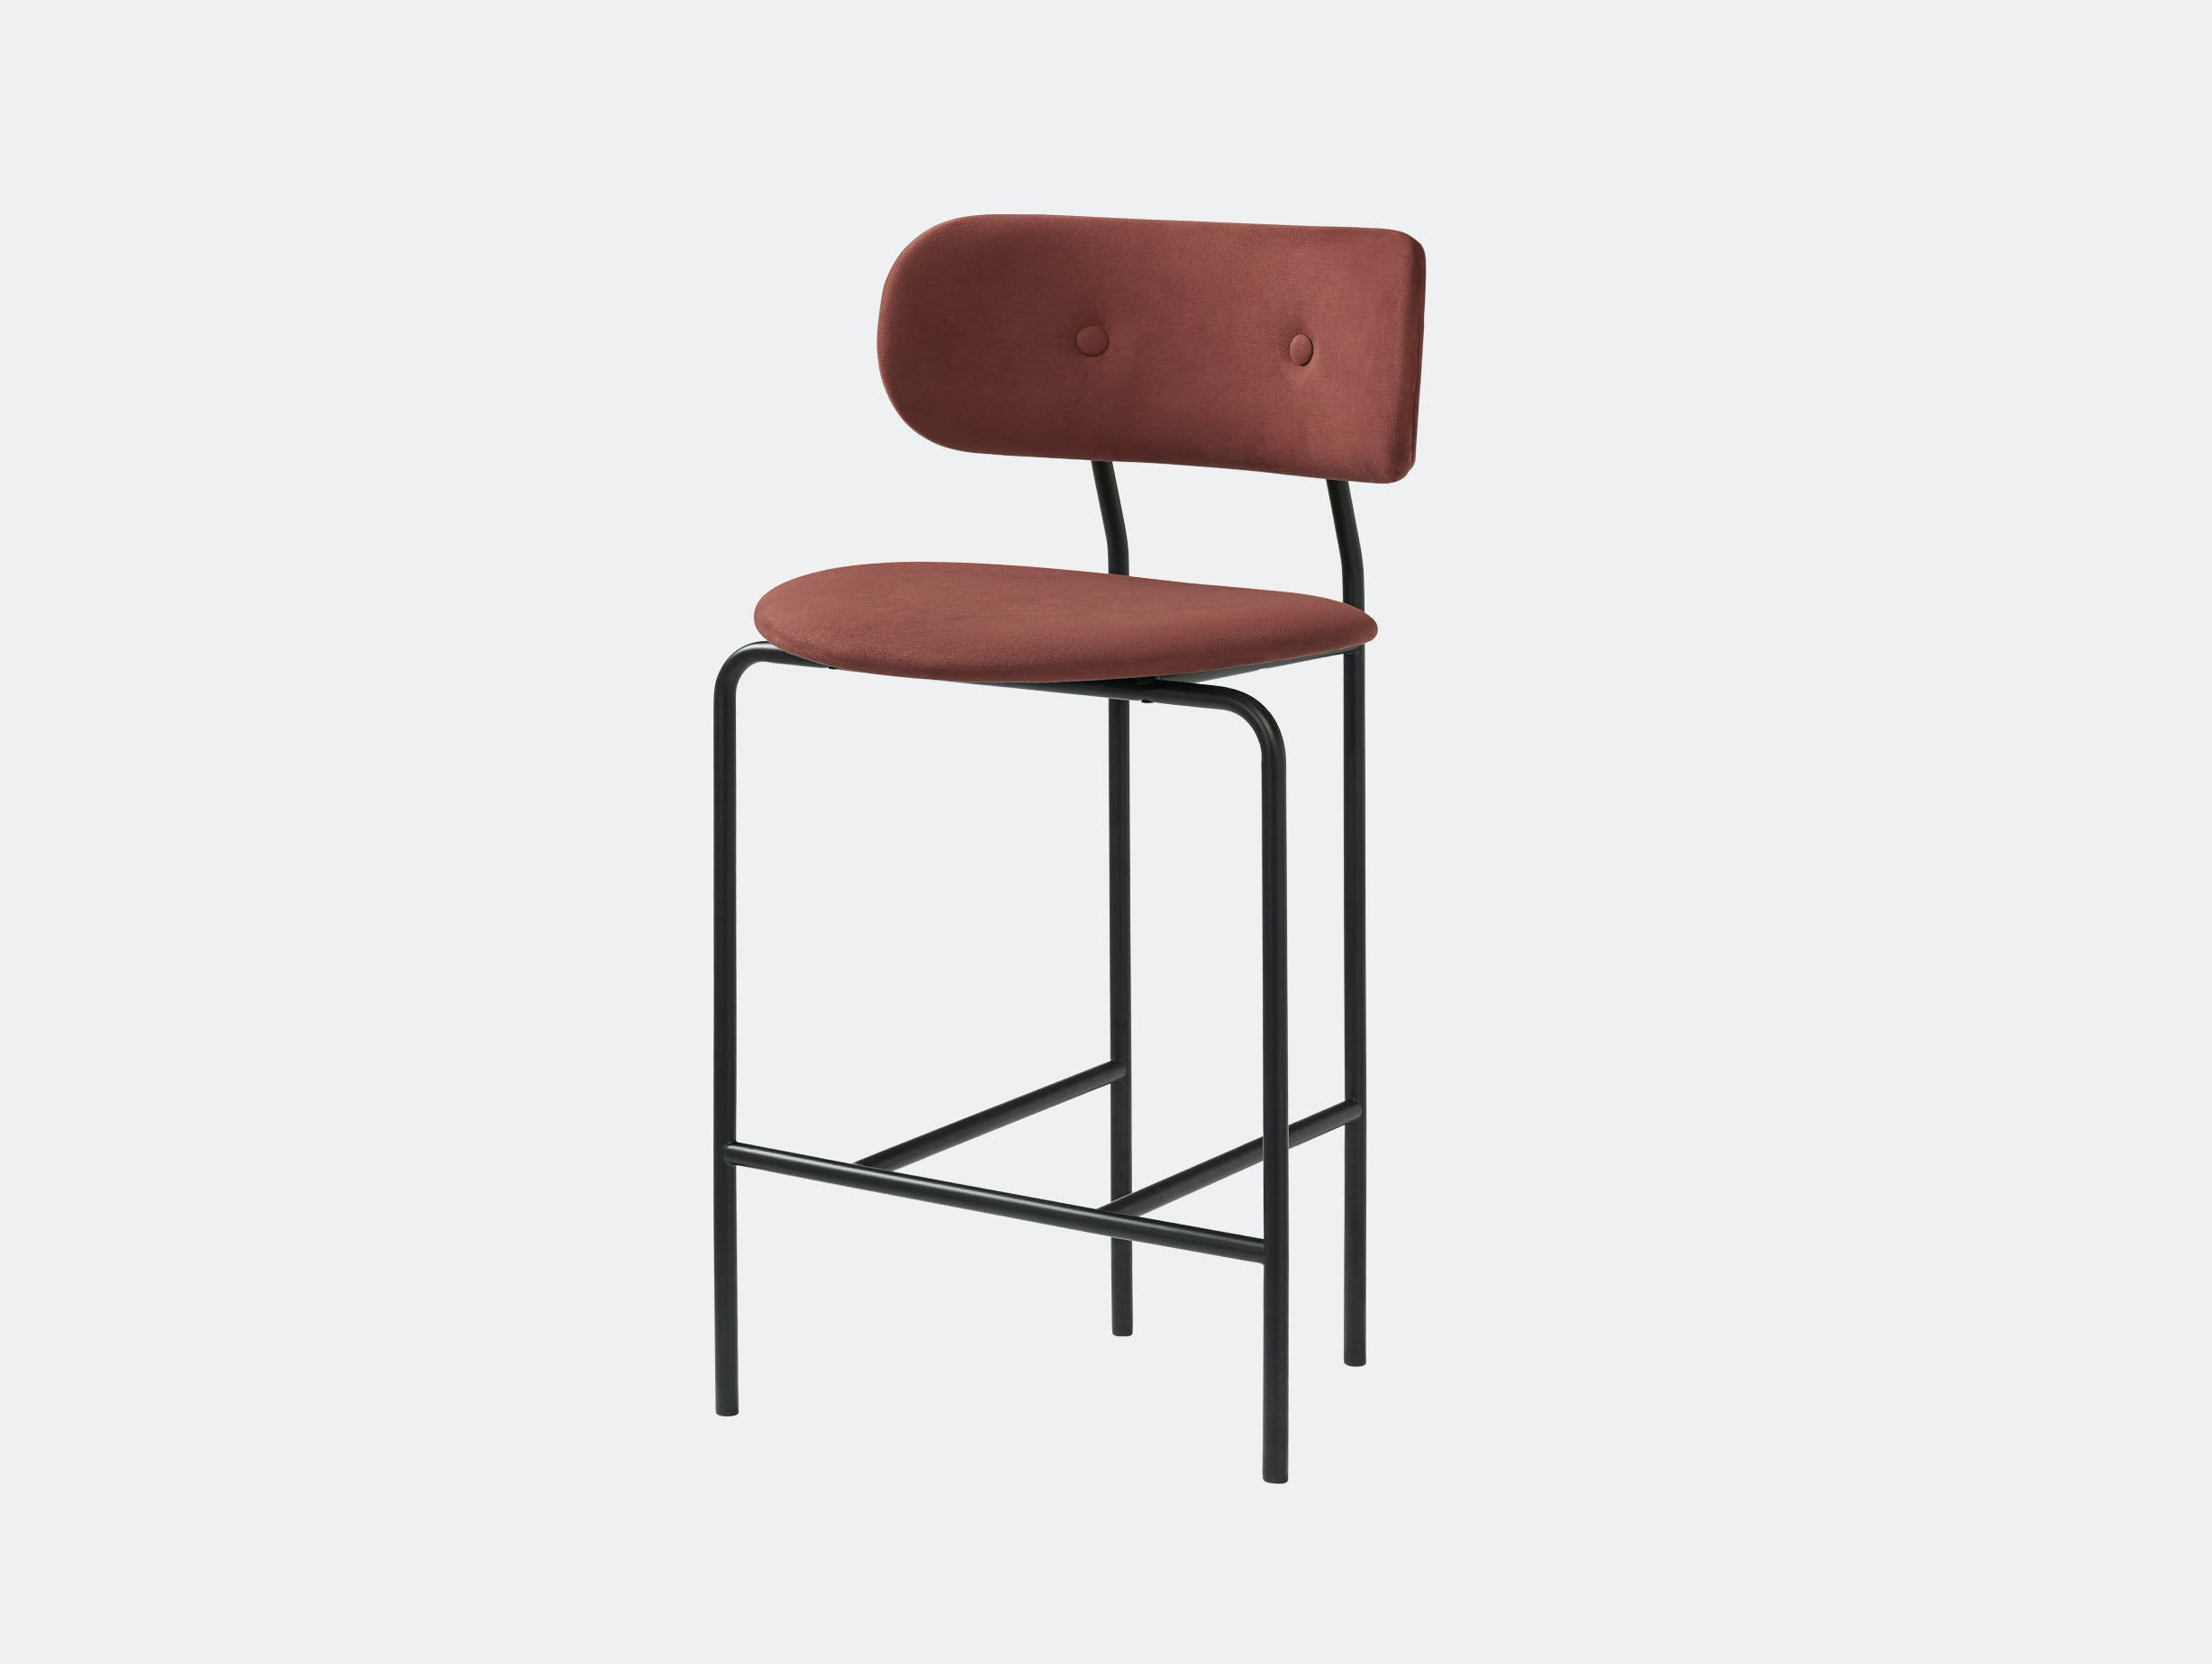 Gubi Coco Barstool Counter Chair Oeo Studio